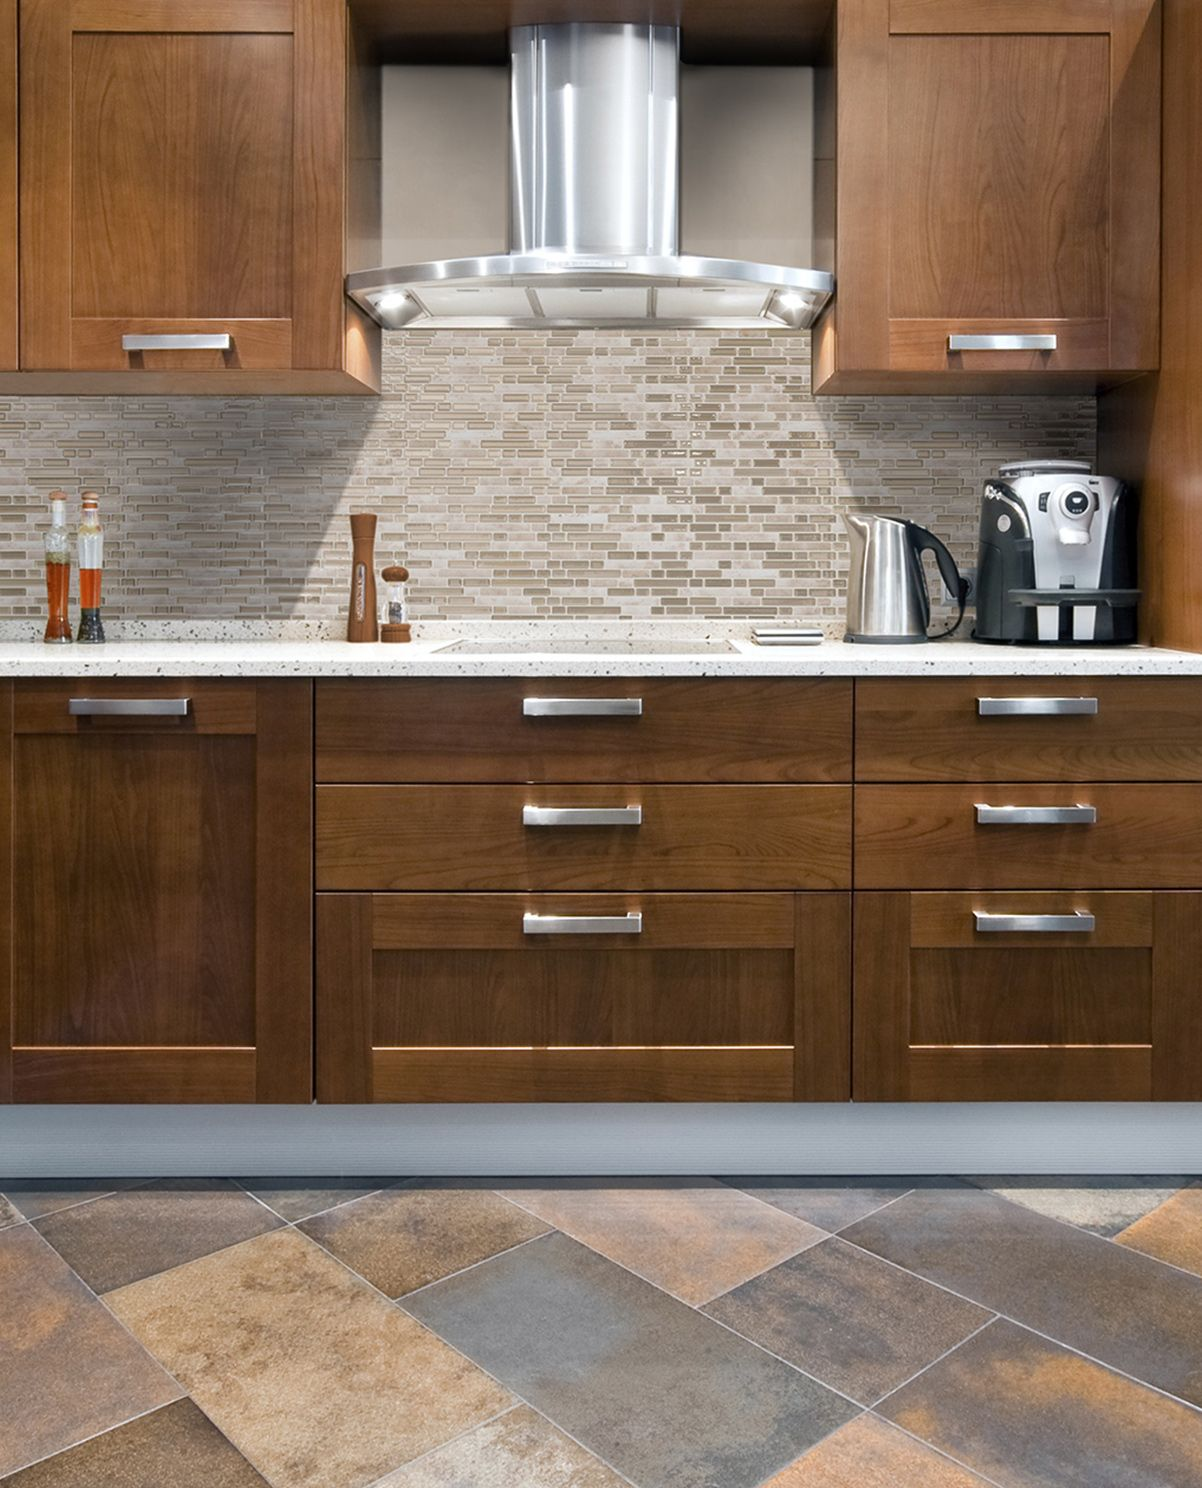 Beautiful Smart Tiles Are Perfect For Adding A Removable Back Splash To A Rental Photo